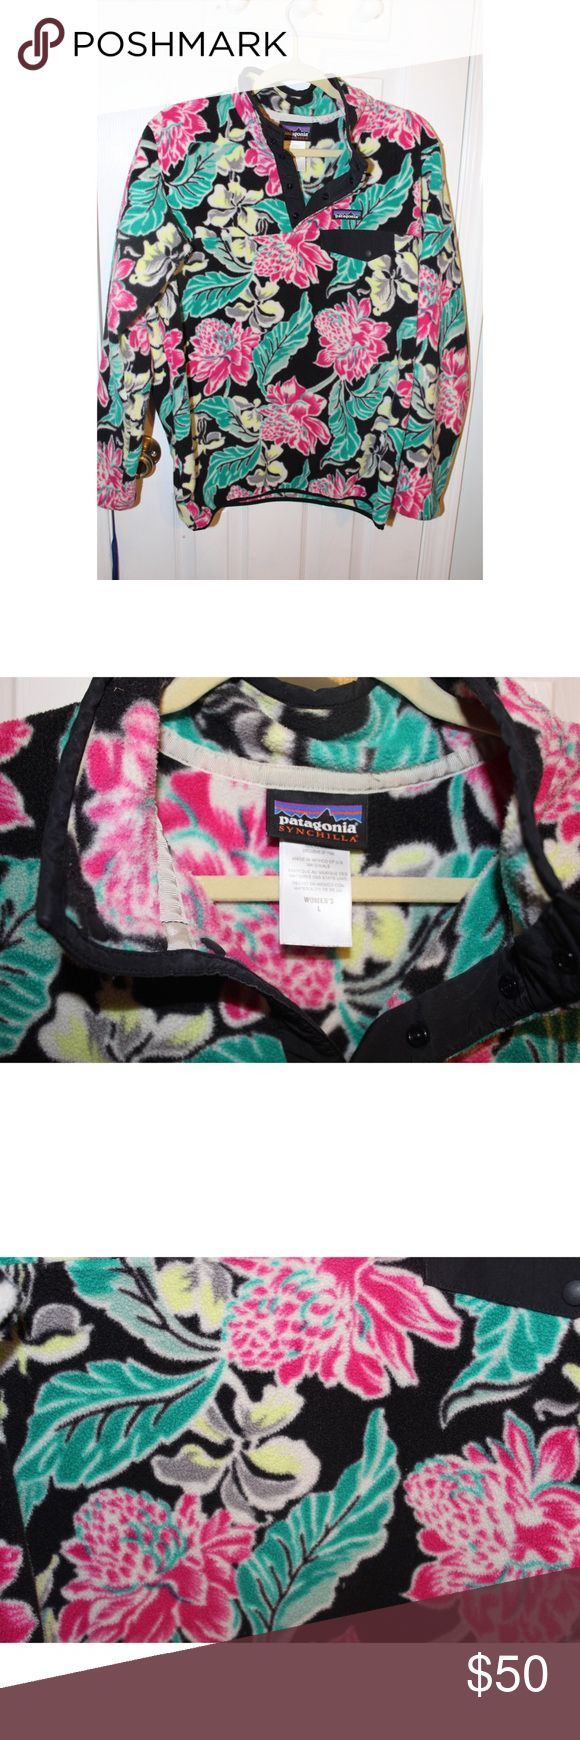 Patagonia Pullover Tropical Patagonia pullover in great condition! Patagonia Jackets & Coats